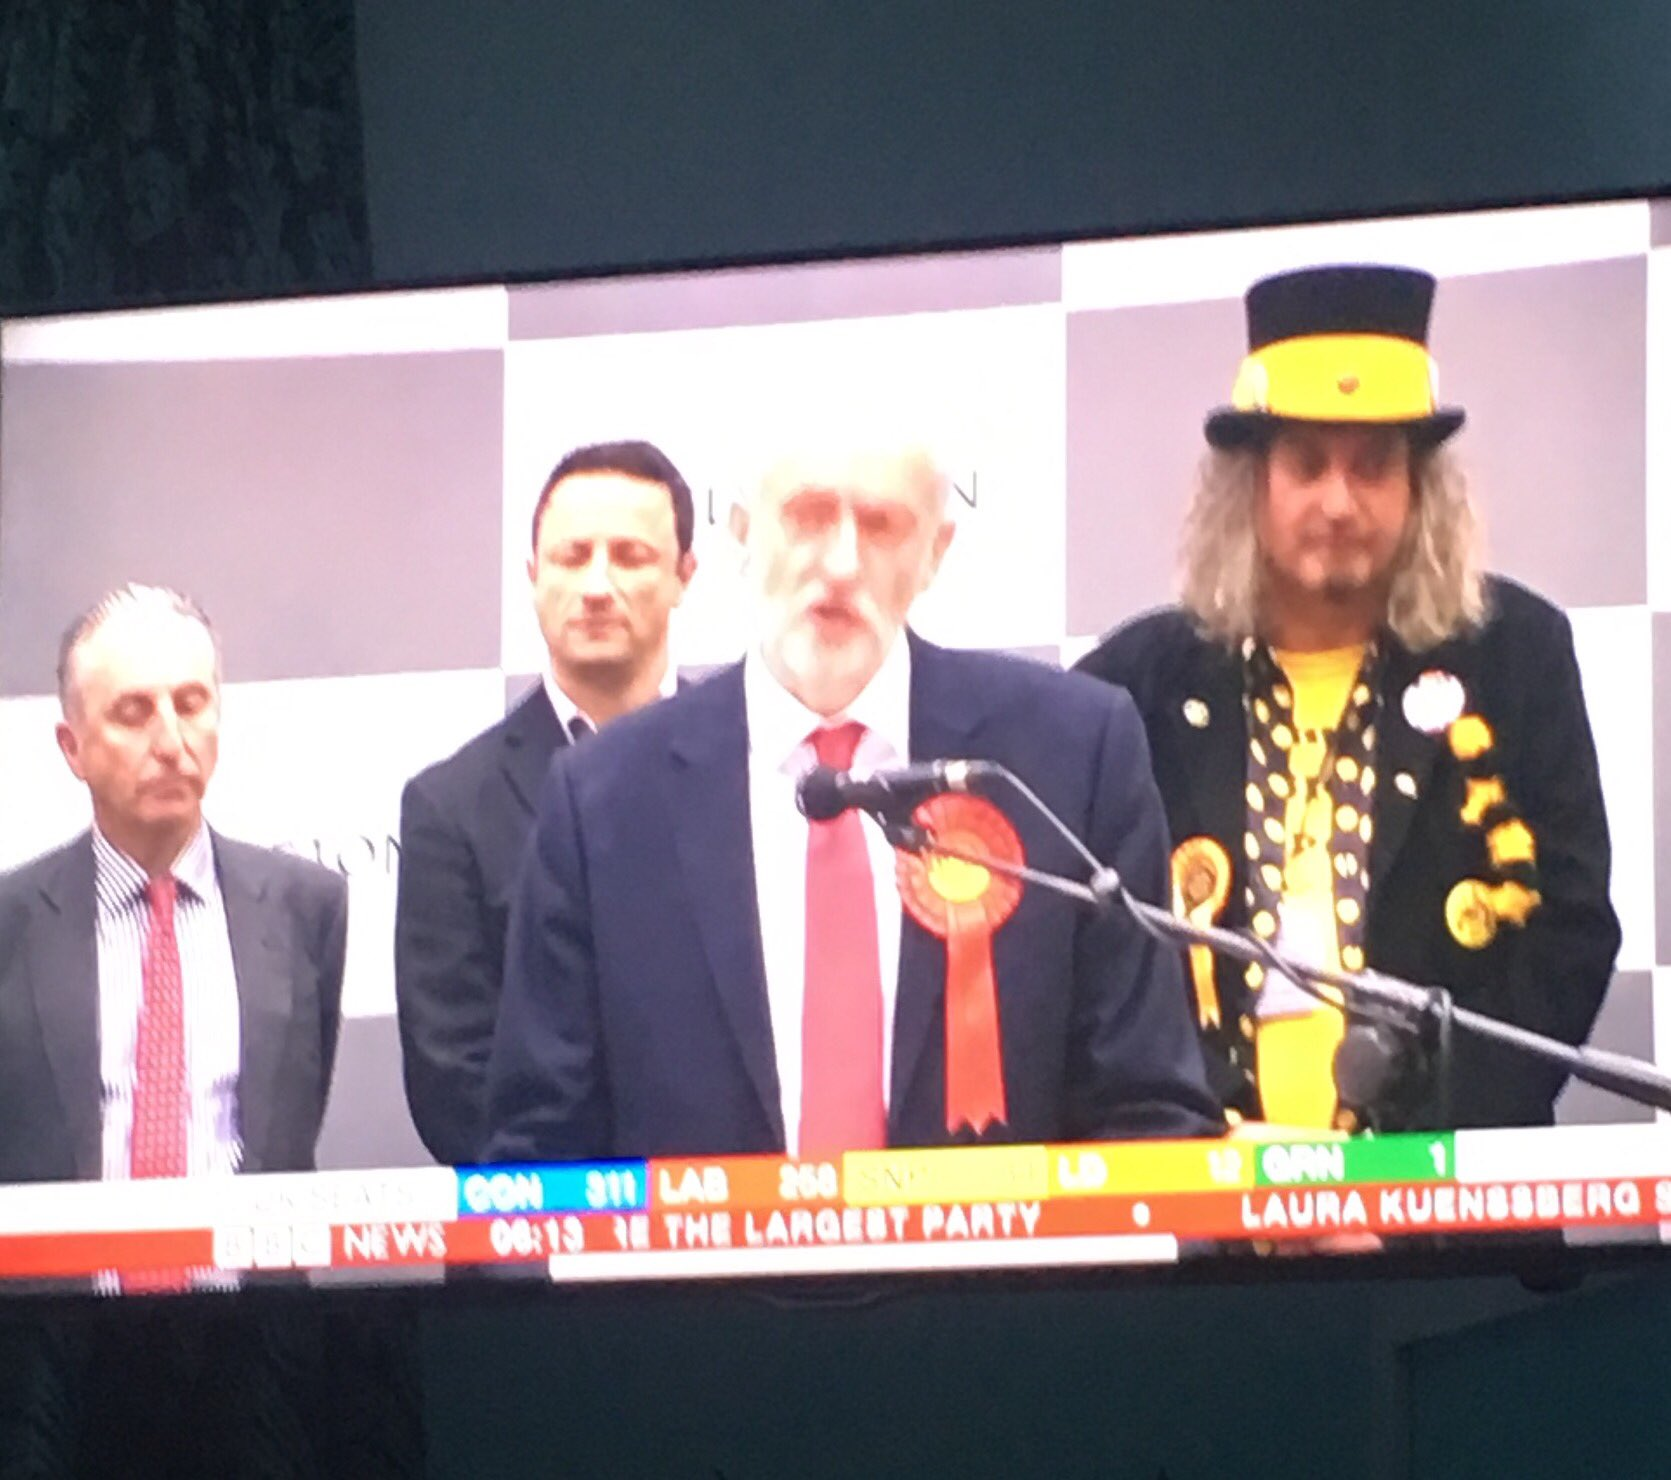 Always enjoy a Monster Raving Loony party dude in background. #GE17 https://t.co/o3lR3kAWYK